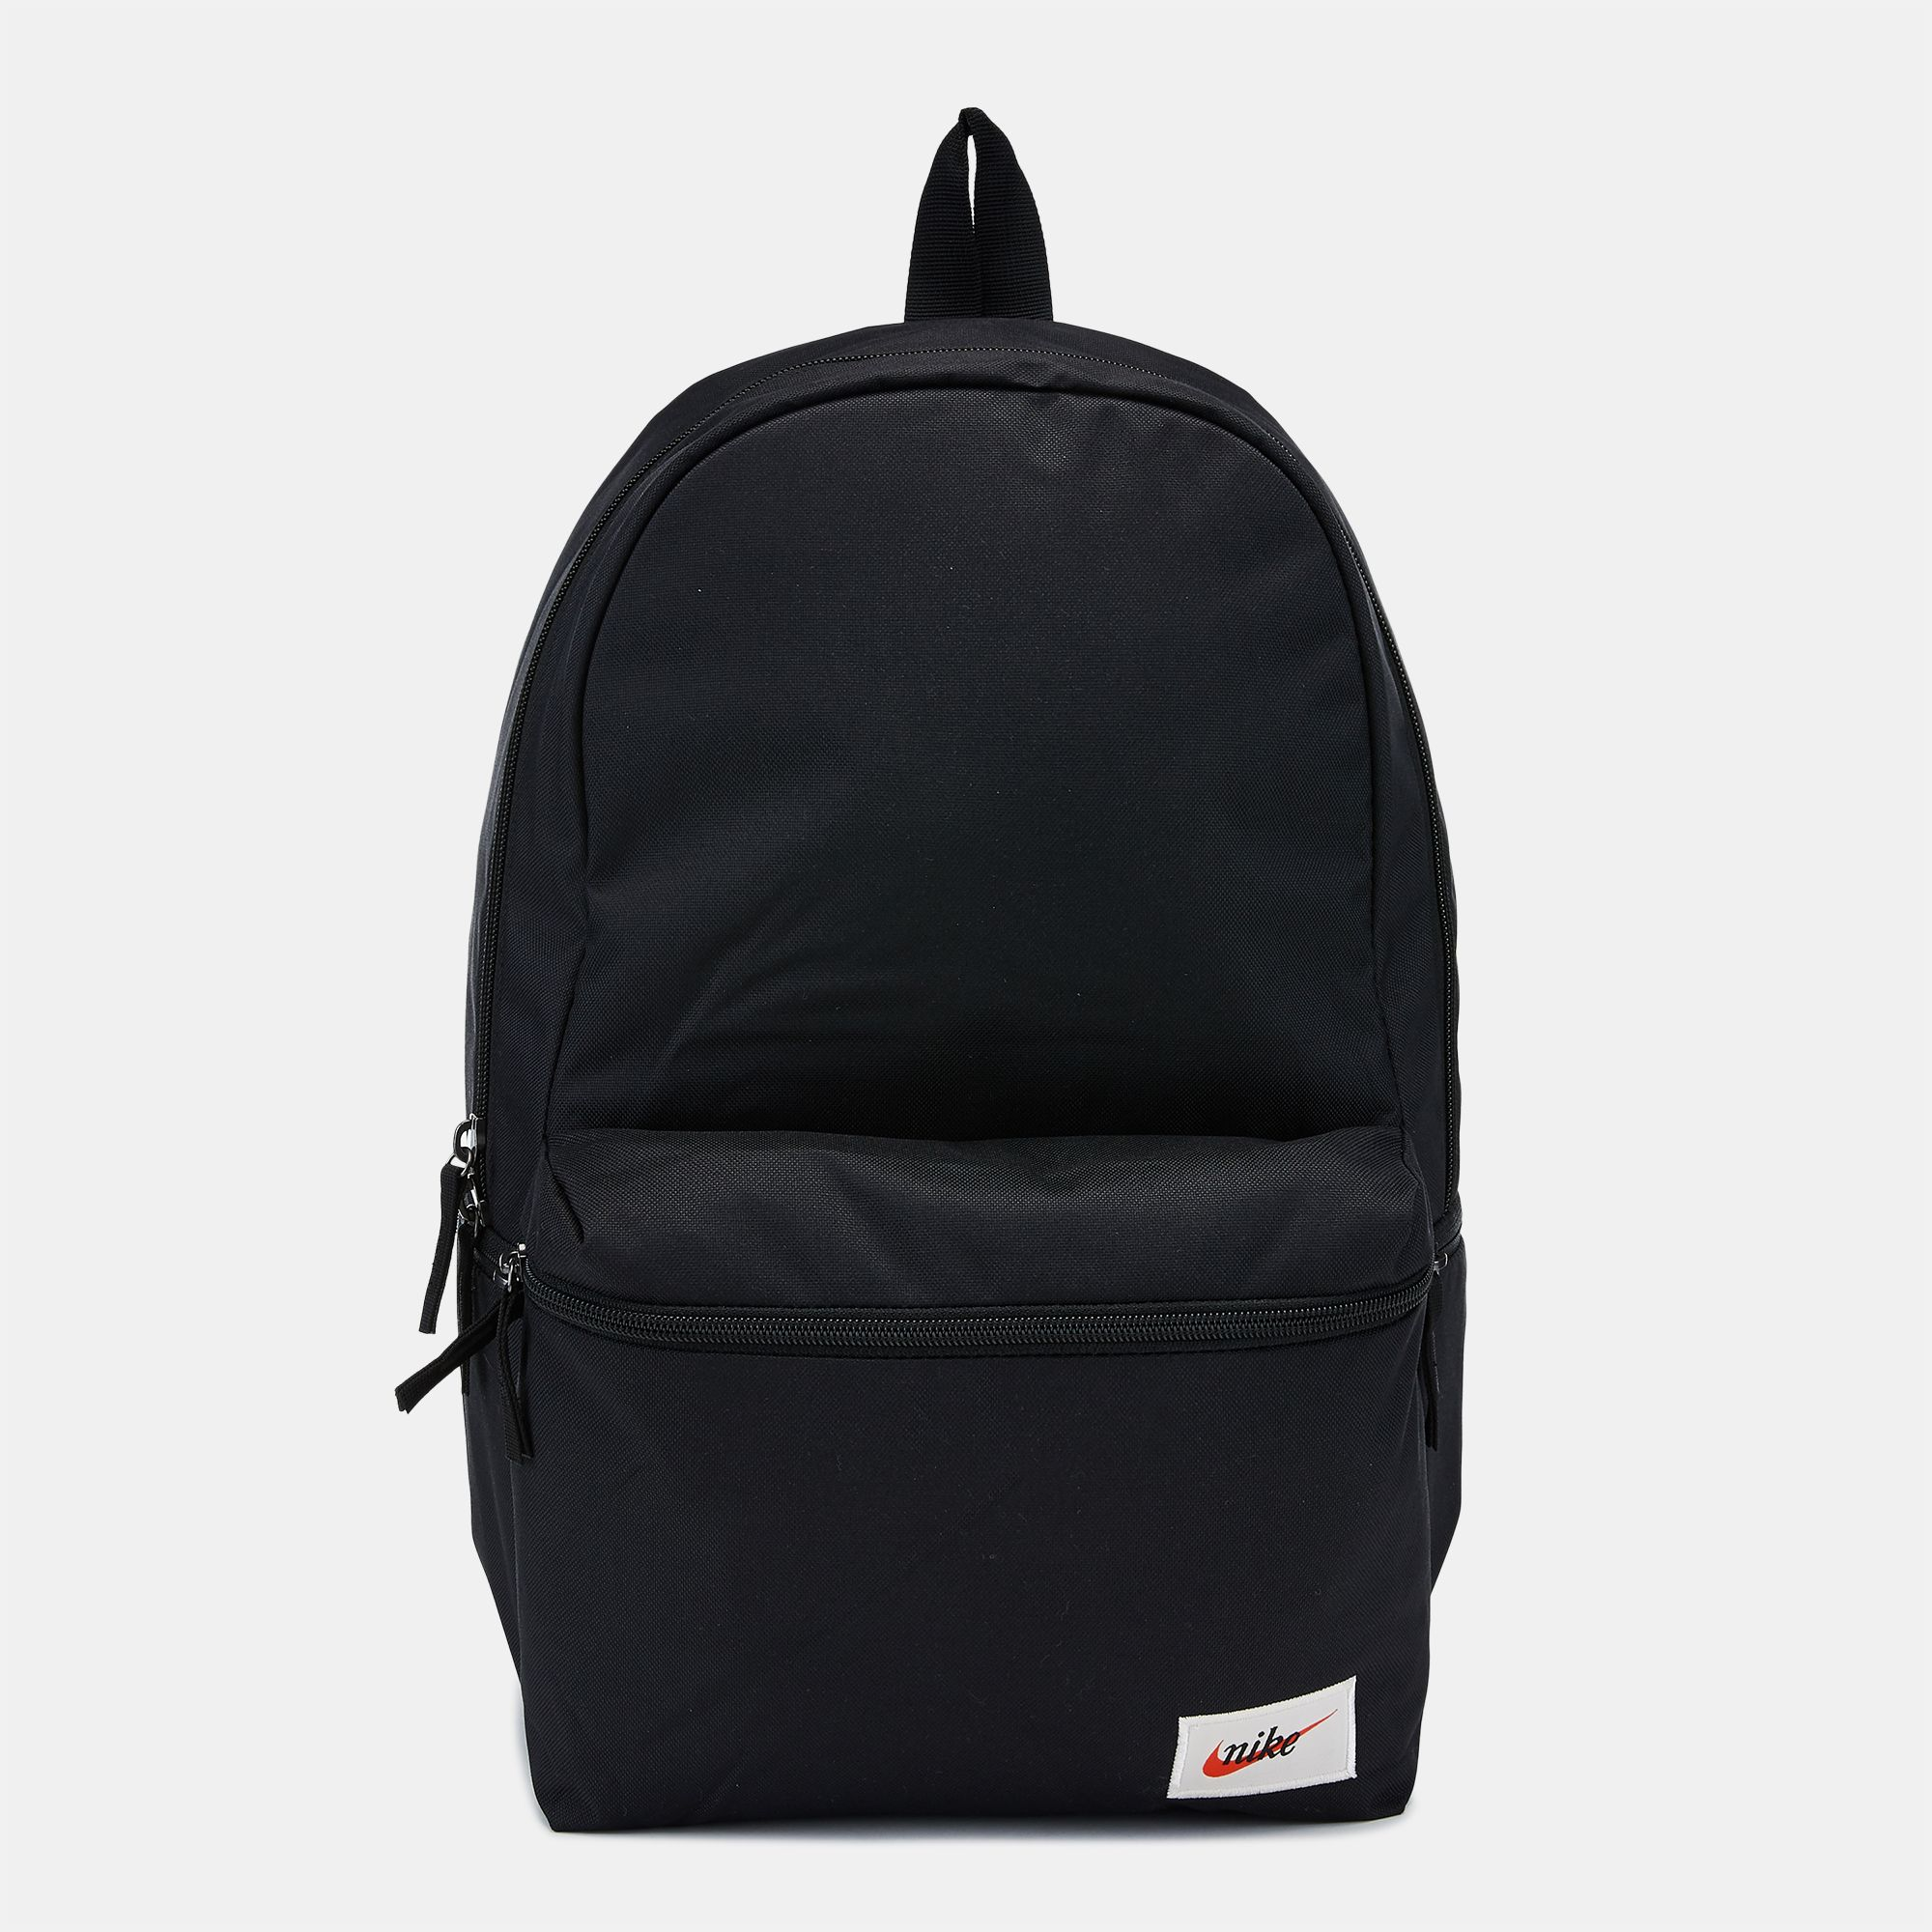 5633fe1fc71c0 Shop Black Nike Heritage Label Backpack